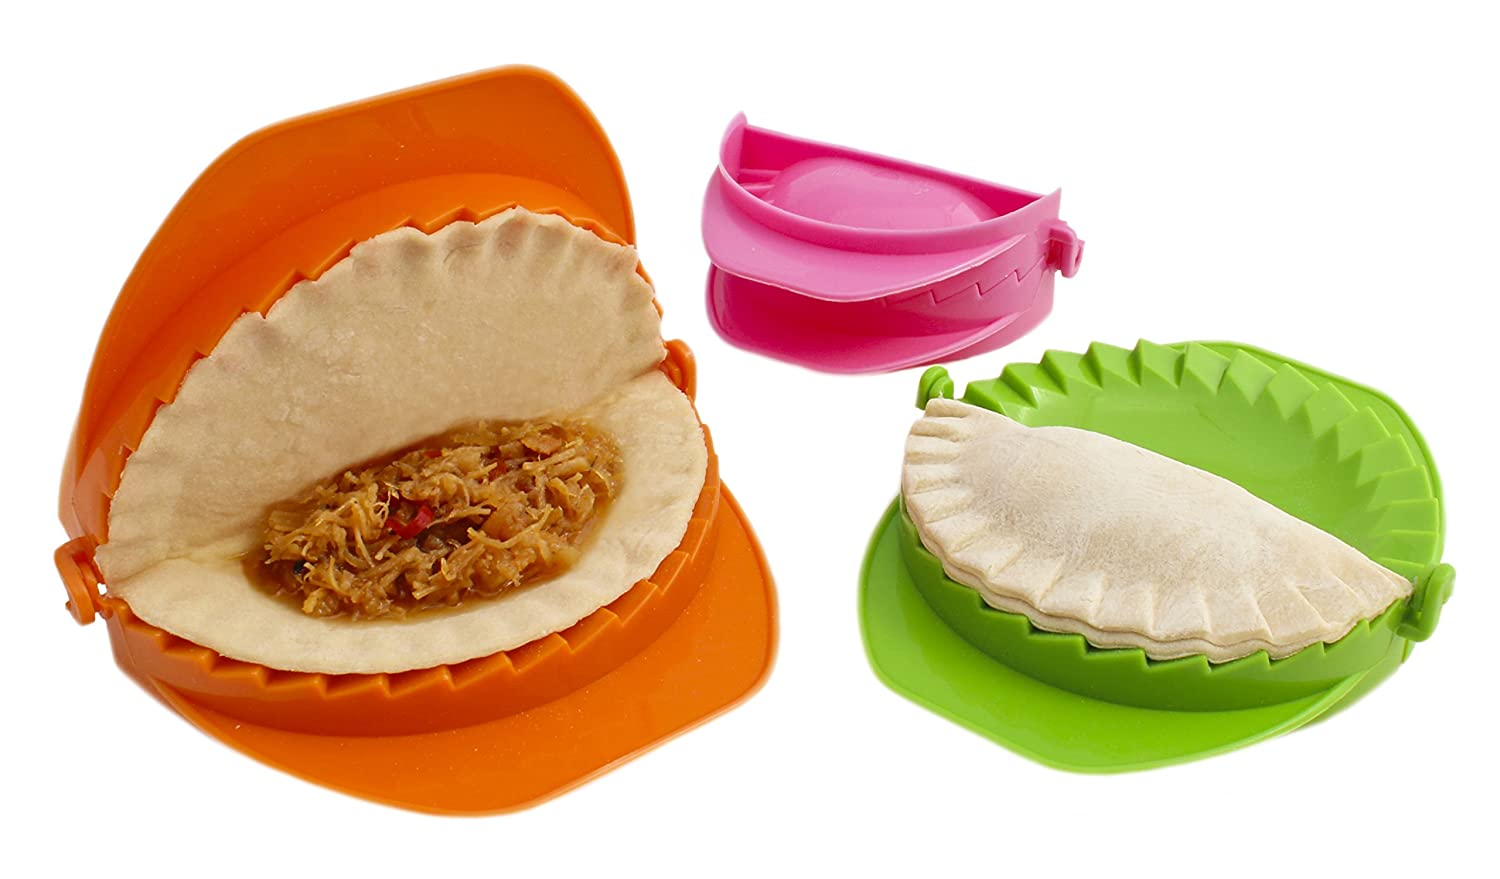 Zoie + Chloe 3-Piece Dough Press Set - Dumpling Calzone Ravioli Empanada Turnover Pierogi